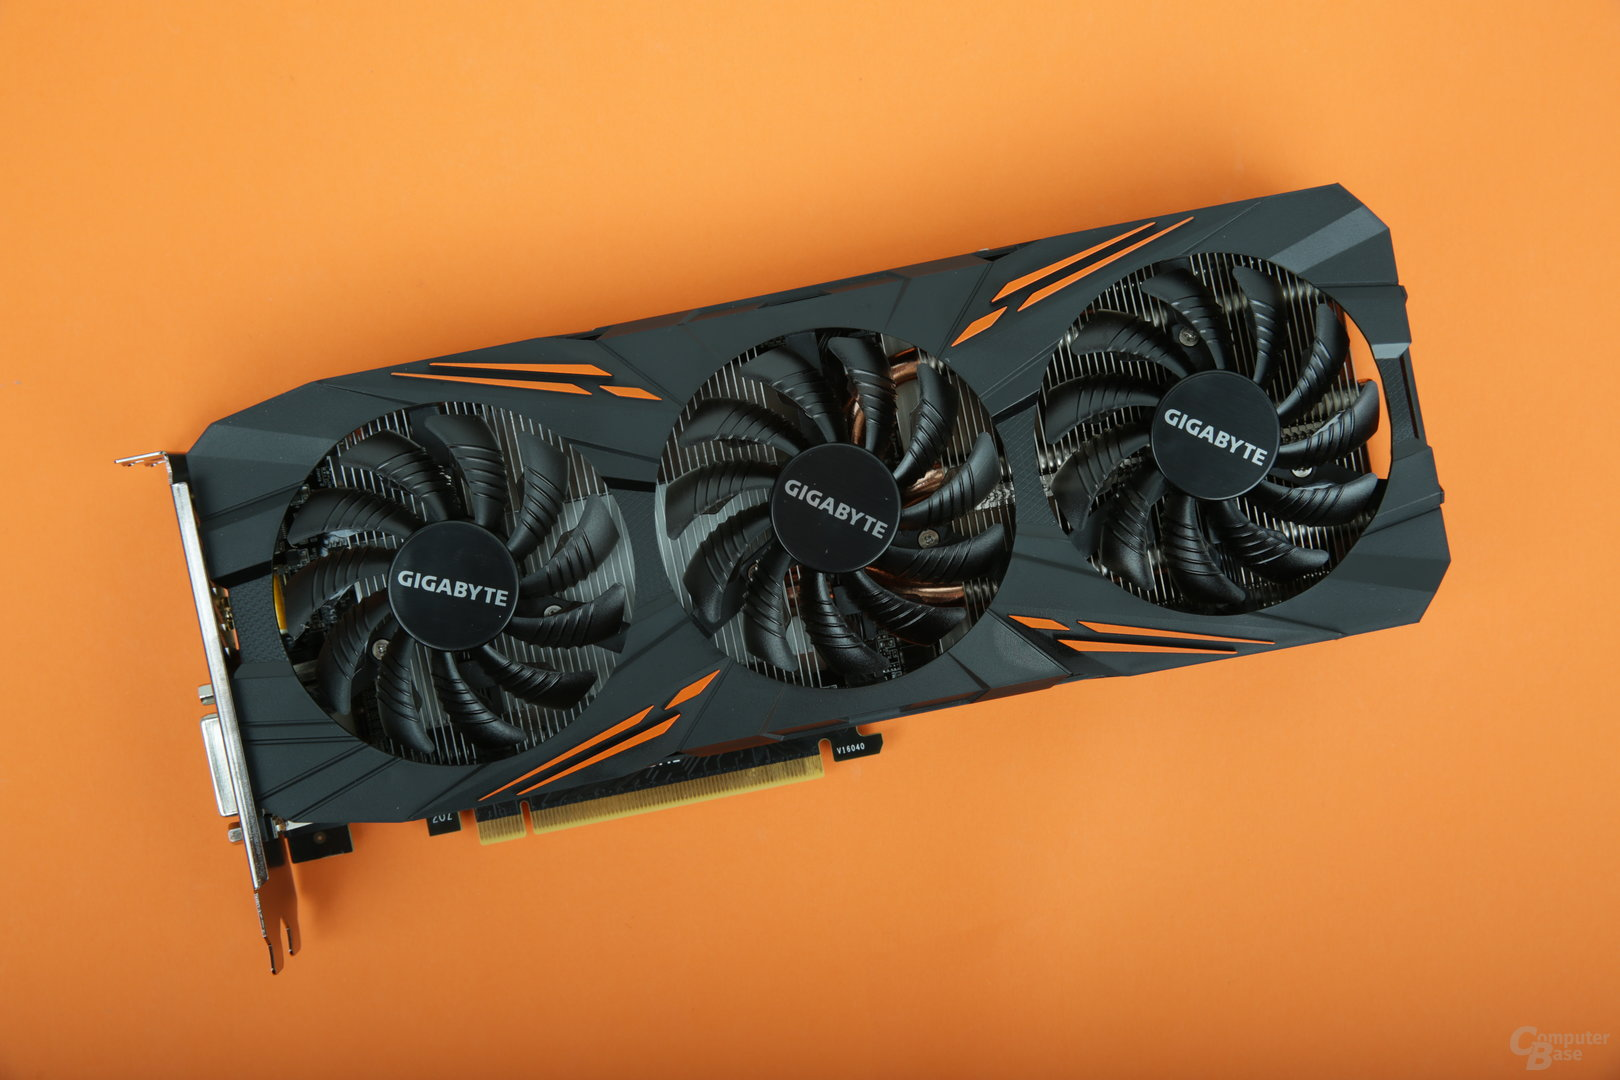 Gigabyte GeForce GTX 1080 G1 Gaming mit WindForce-Kühlsystem